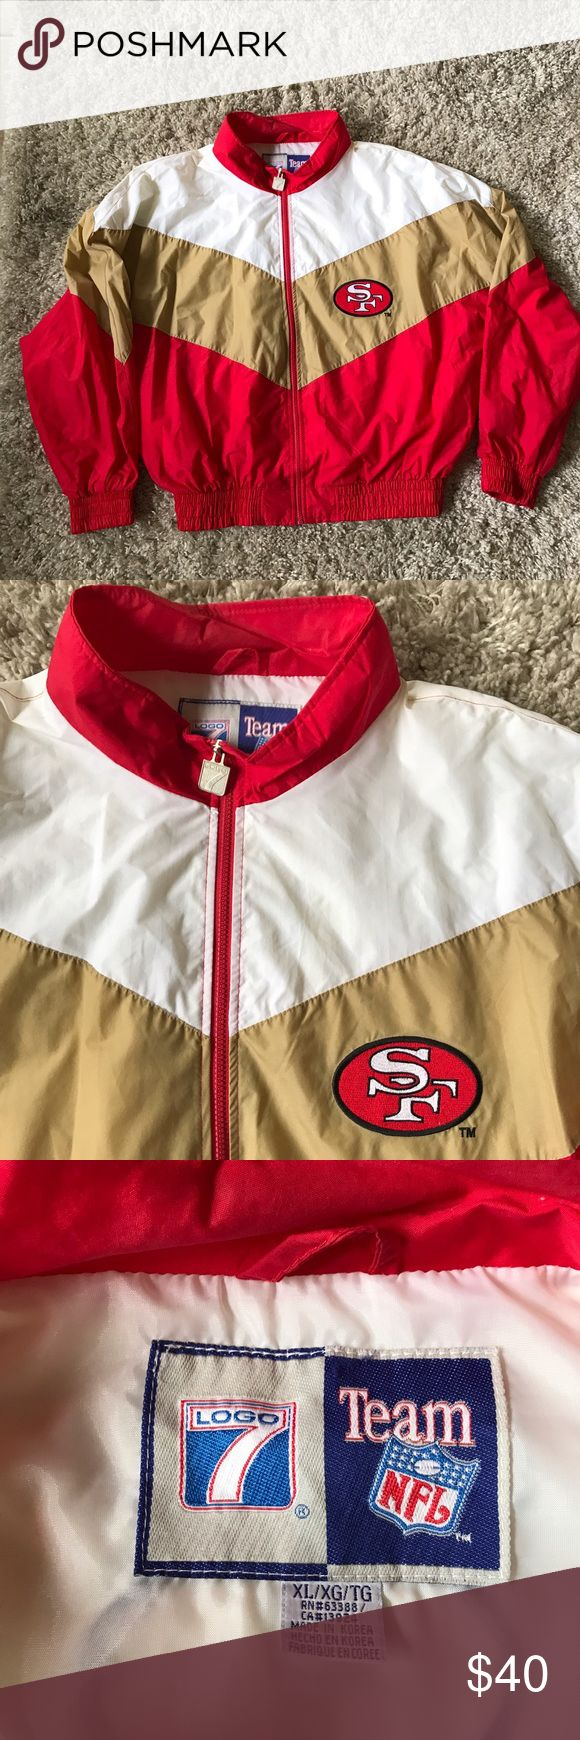 Vintage football jacket 49ers 90s (not nike) Not nike!! / men's jacket vintage football team / 49ers / men's size Xl / great condition Nike Jackets & Coats